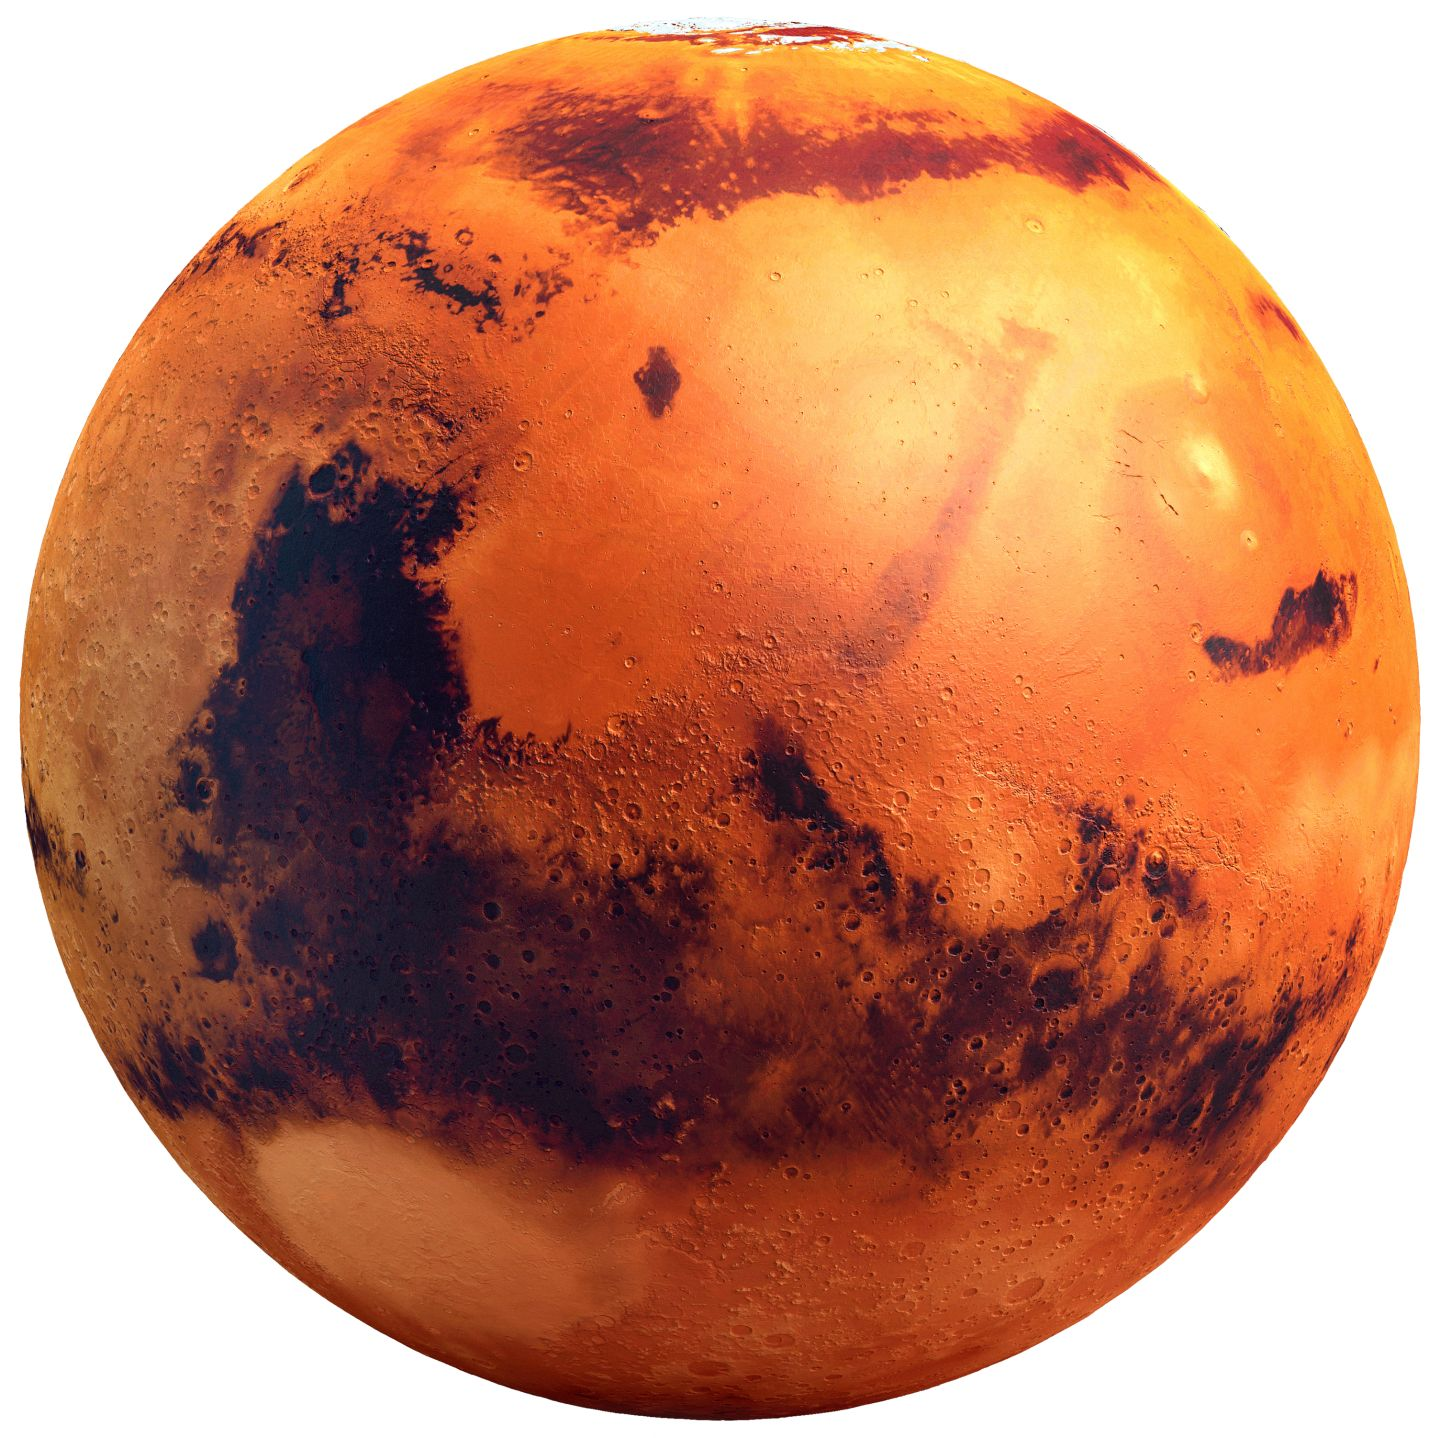 Mars clipart solar system Out DK Mars Find Tattoo